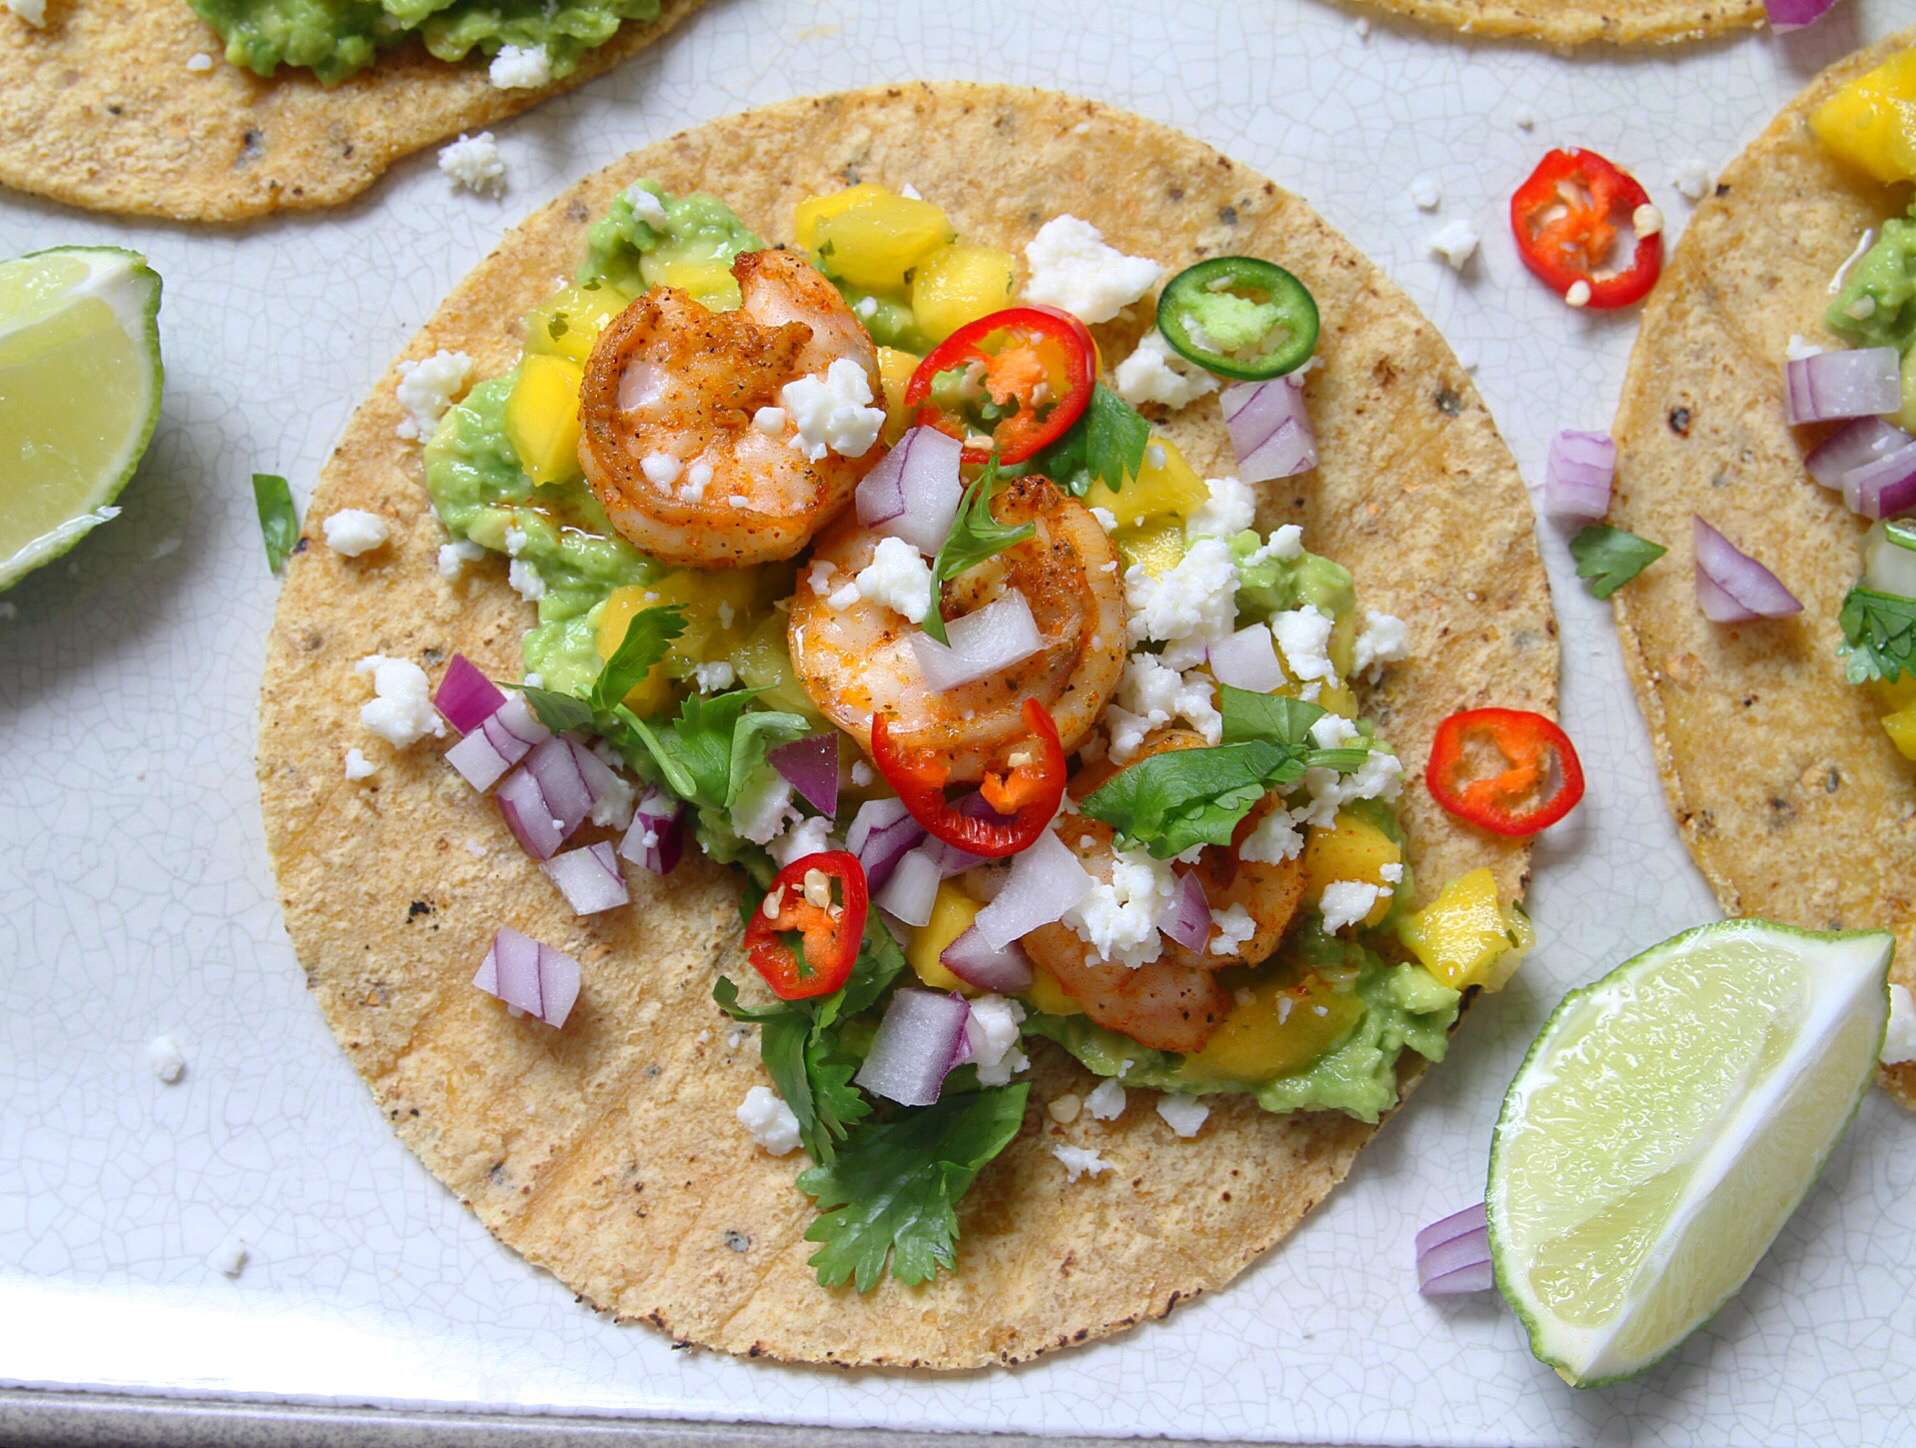 Shrimp tacos are always a win.